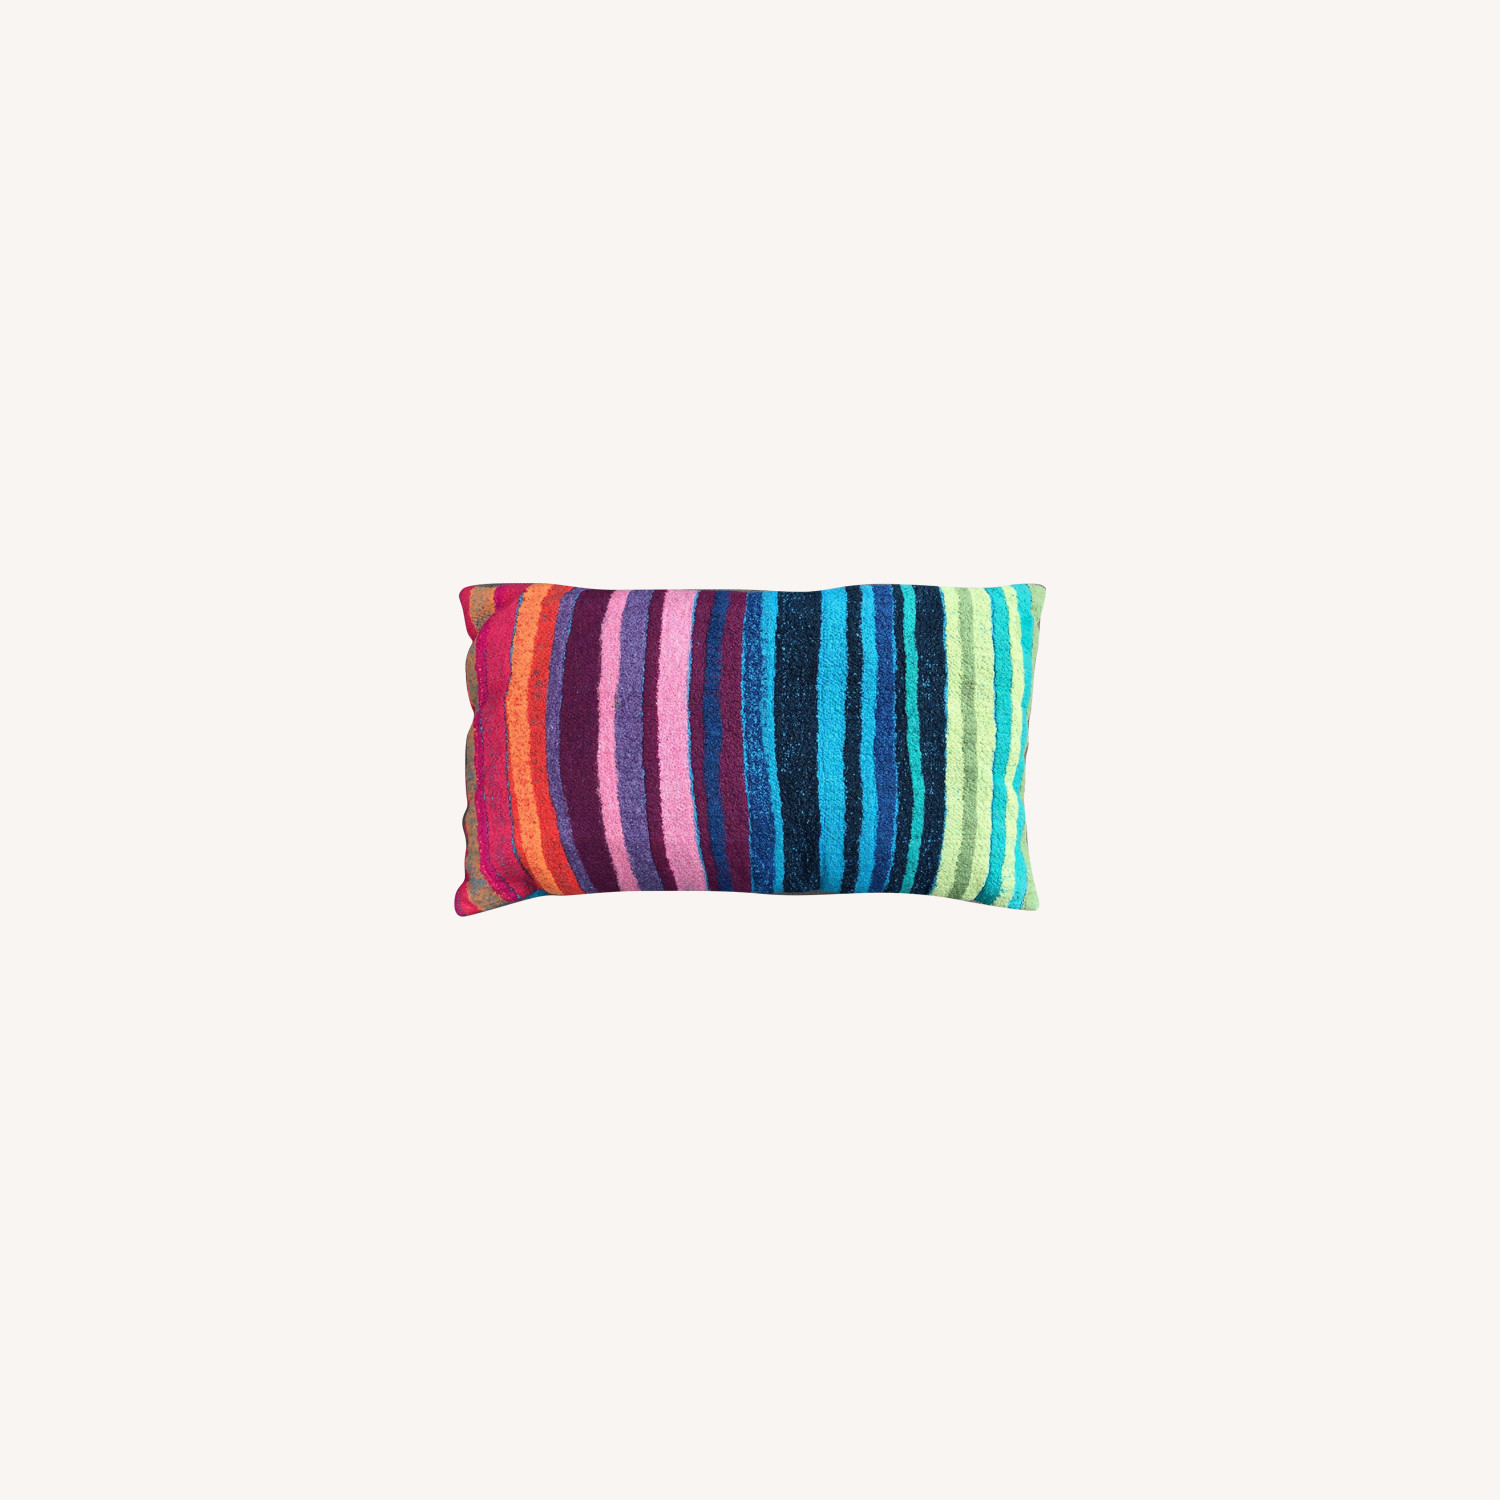 CB2 Colorful Pillows